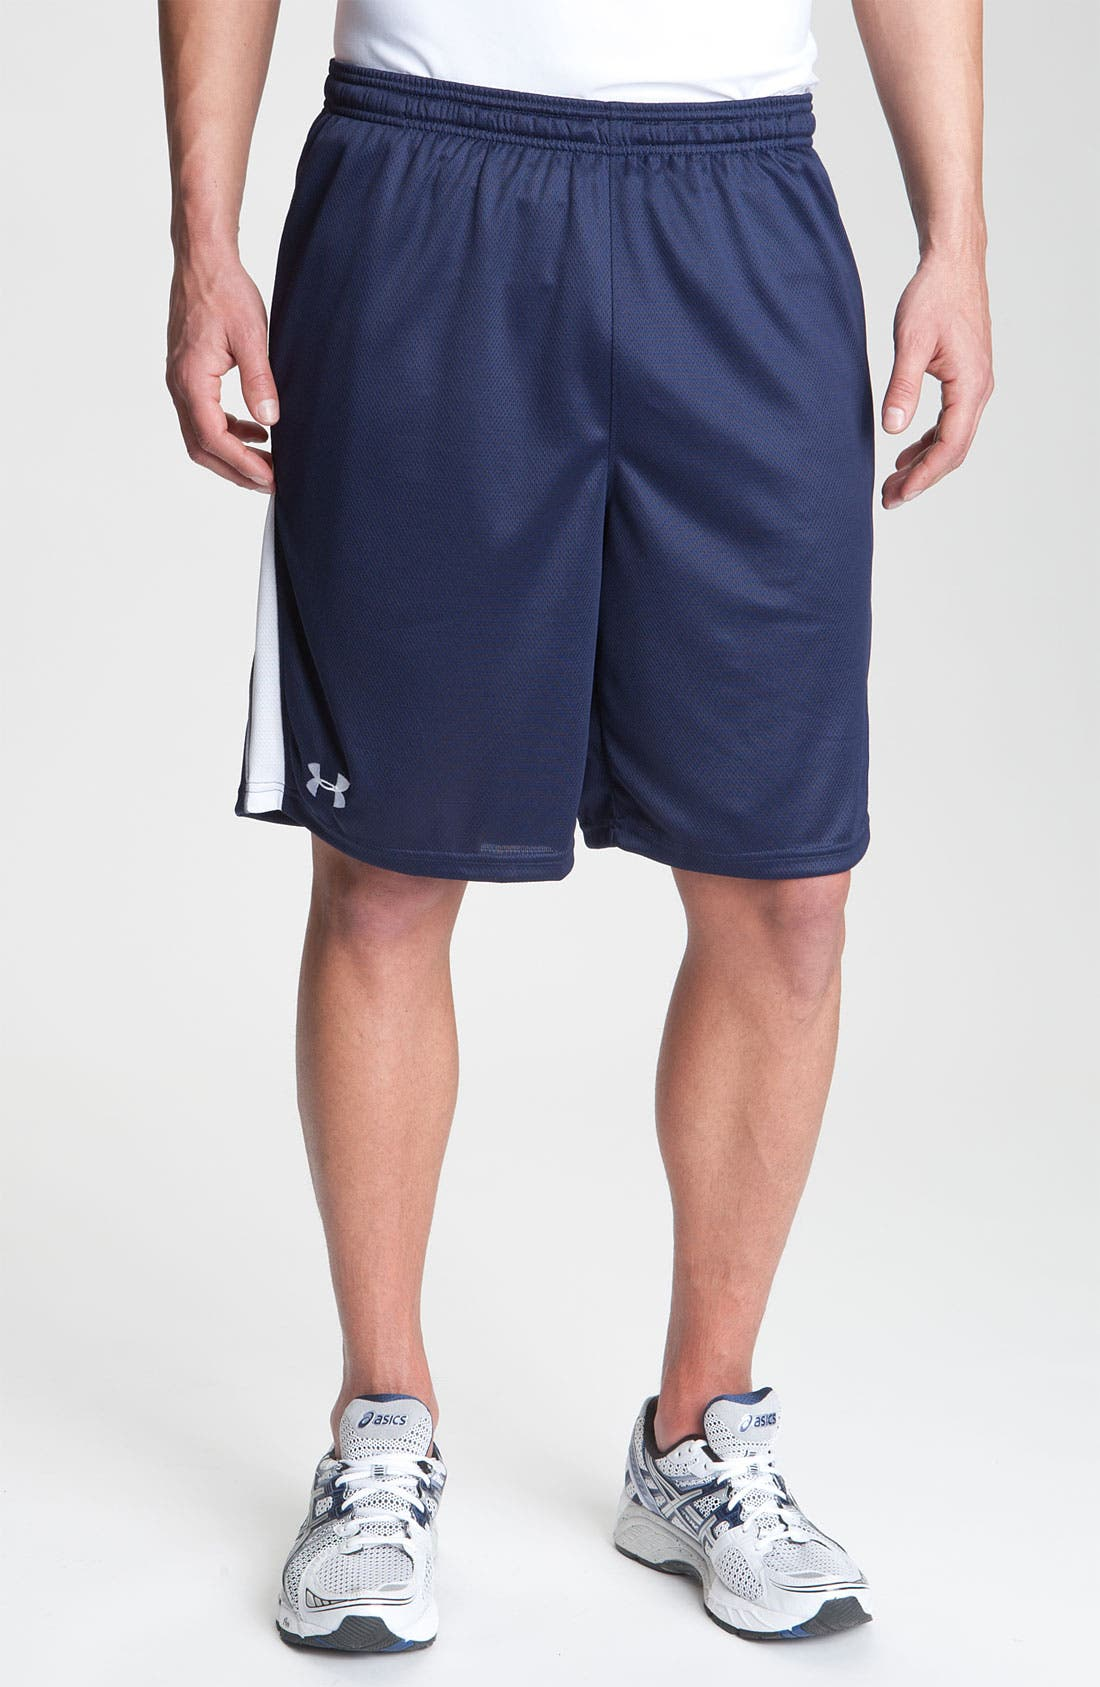 Main Image - Under Armour 'Flex Stripe' Shorts